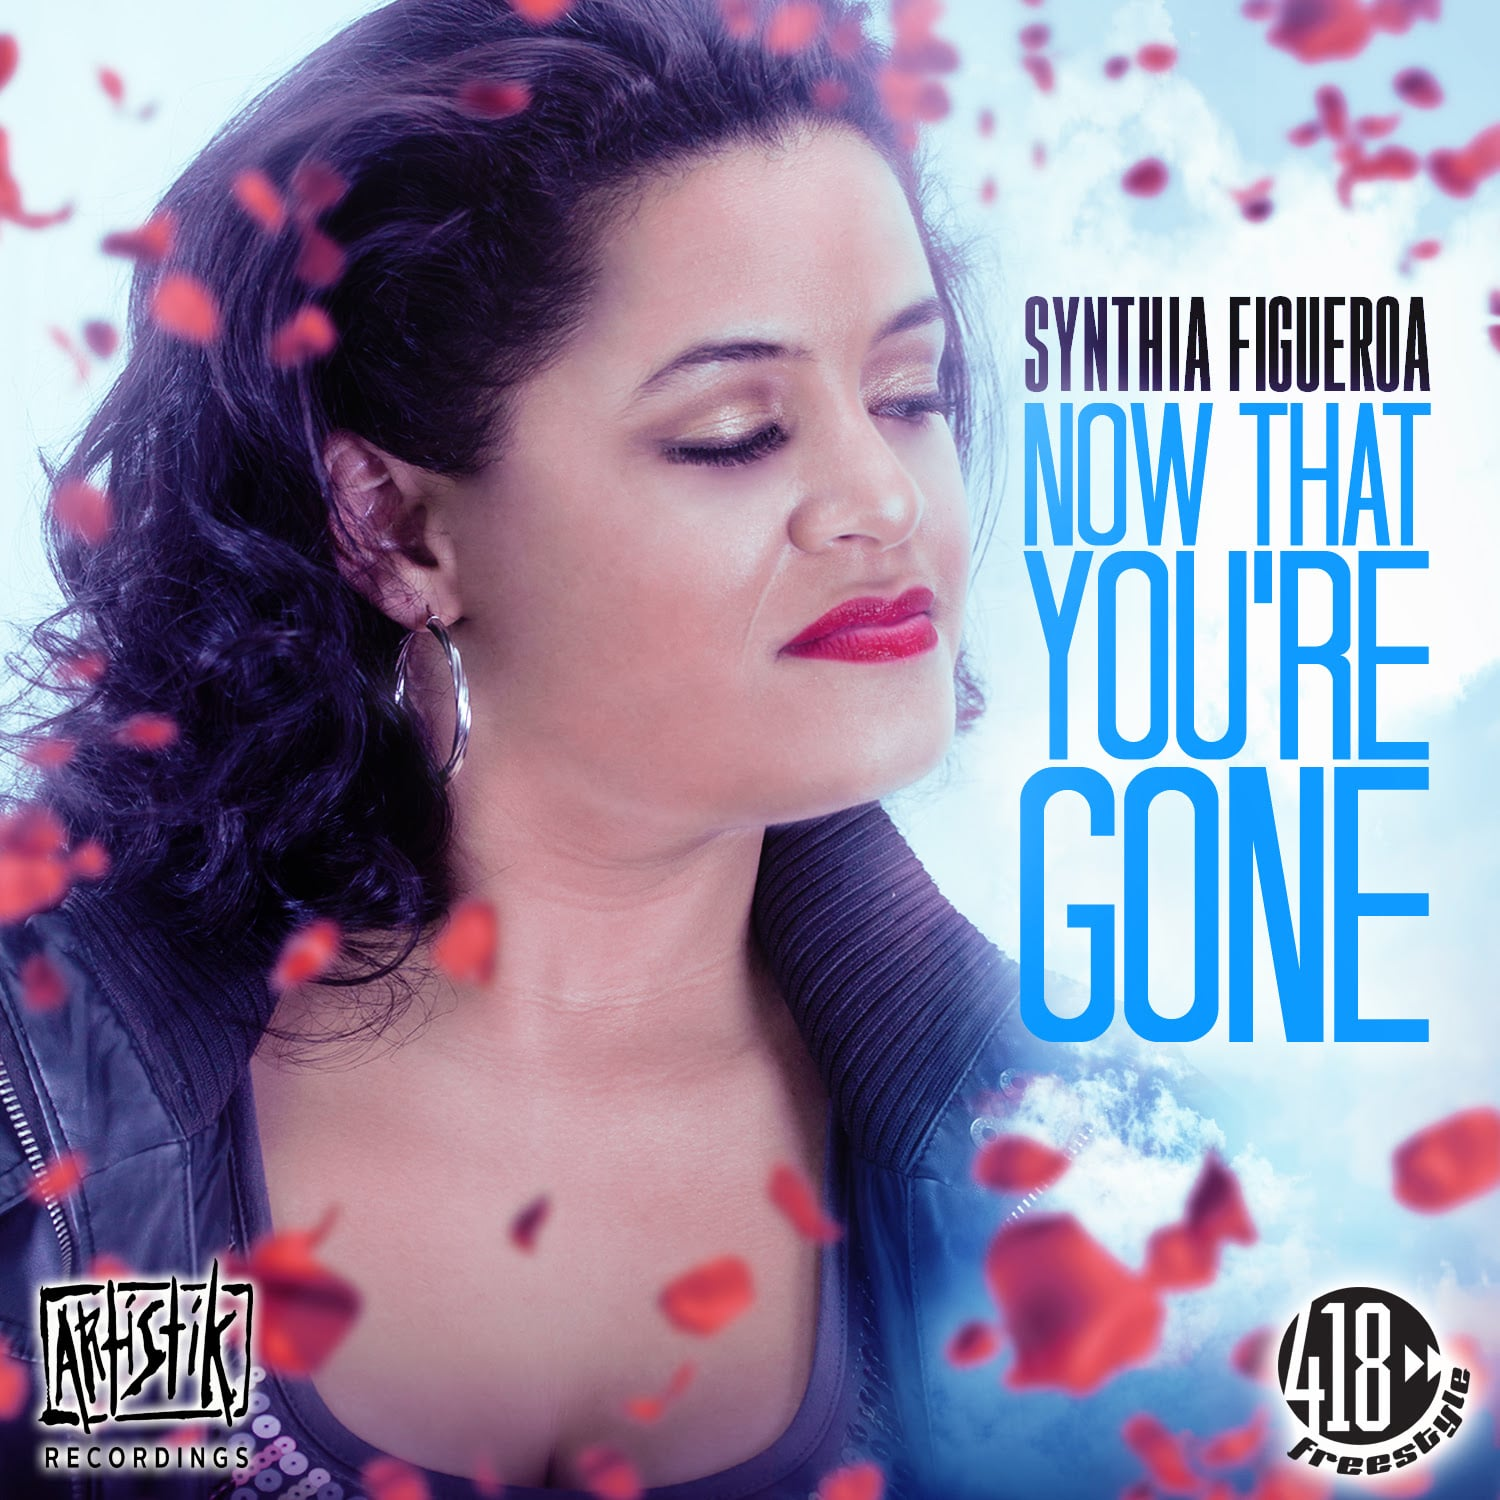 Now That You're Gone by Synthia